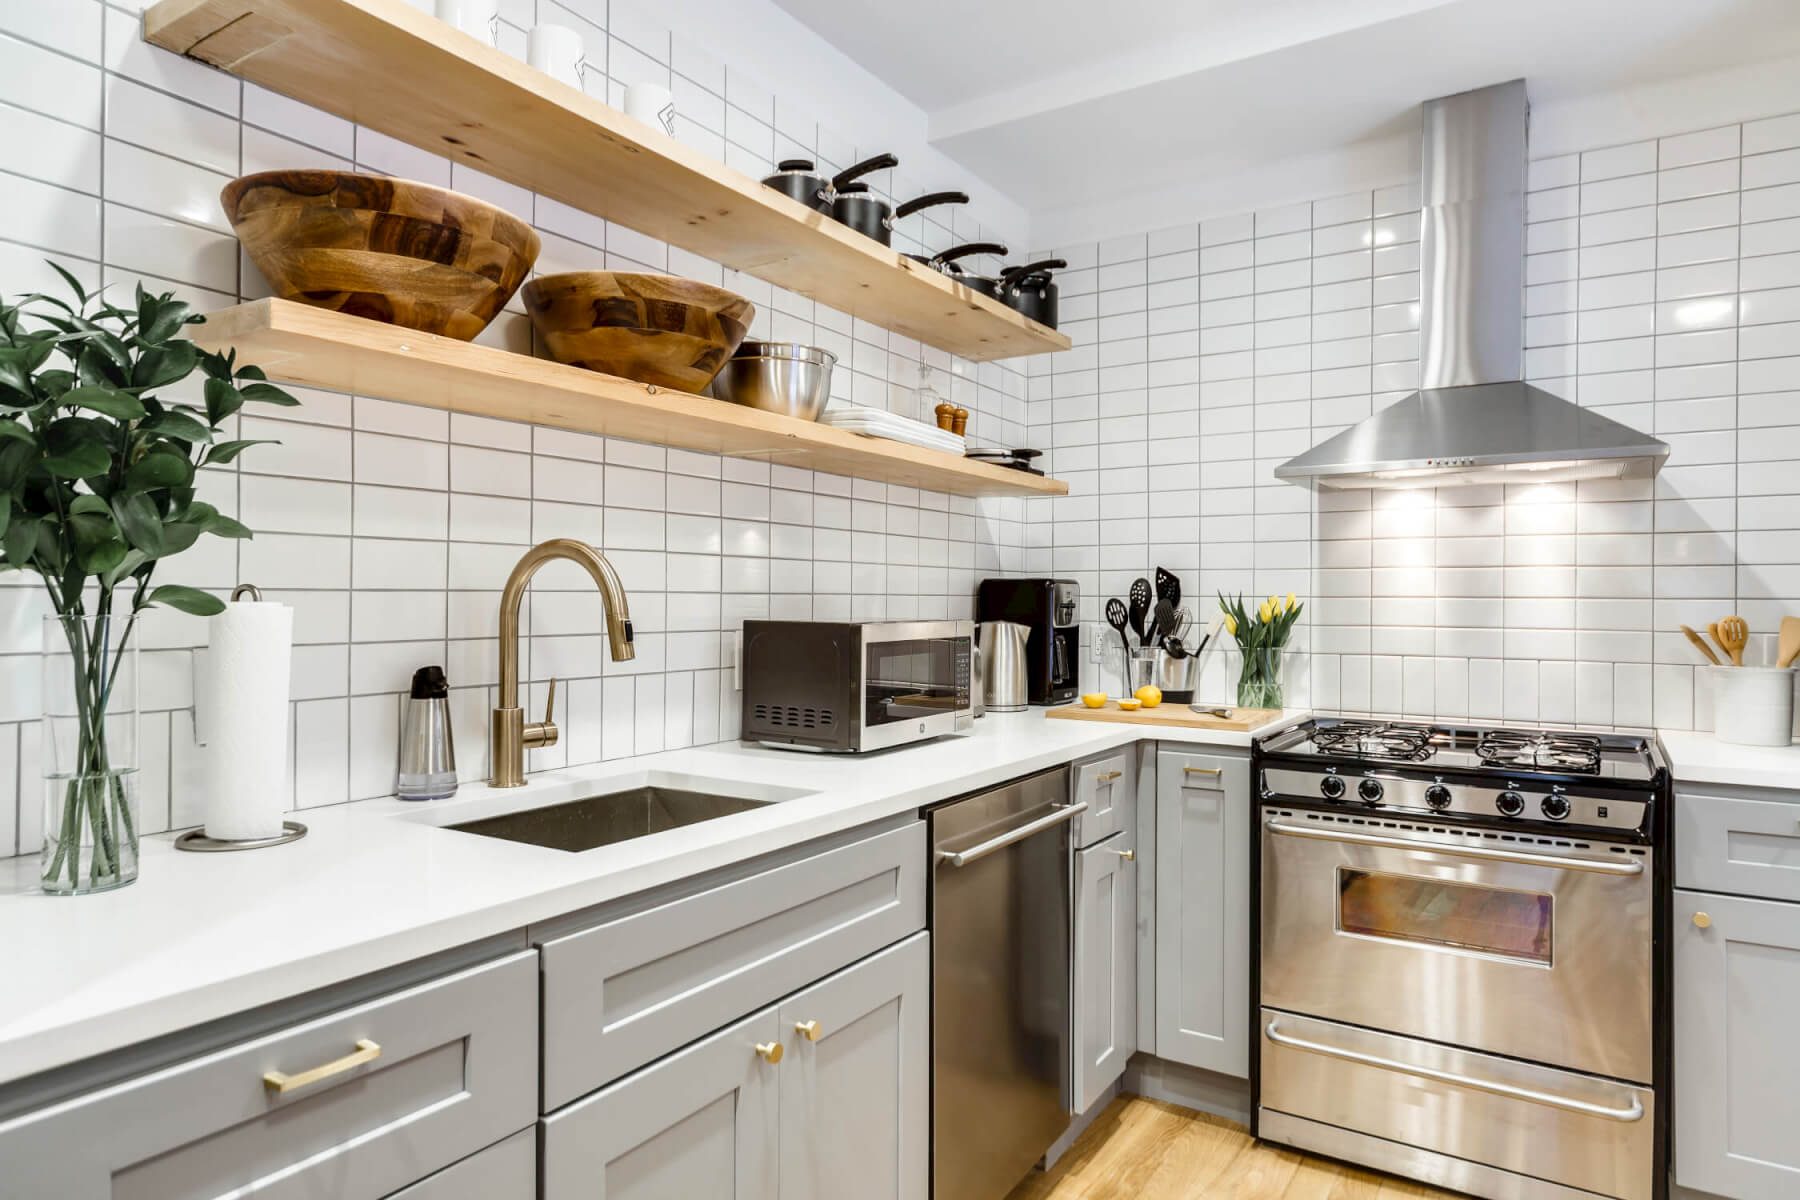 The shared kitchen at Common Kingston in Crown Heights, Brooklyn.